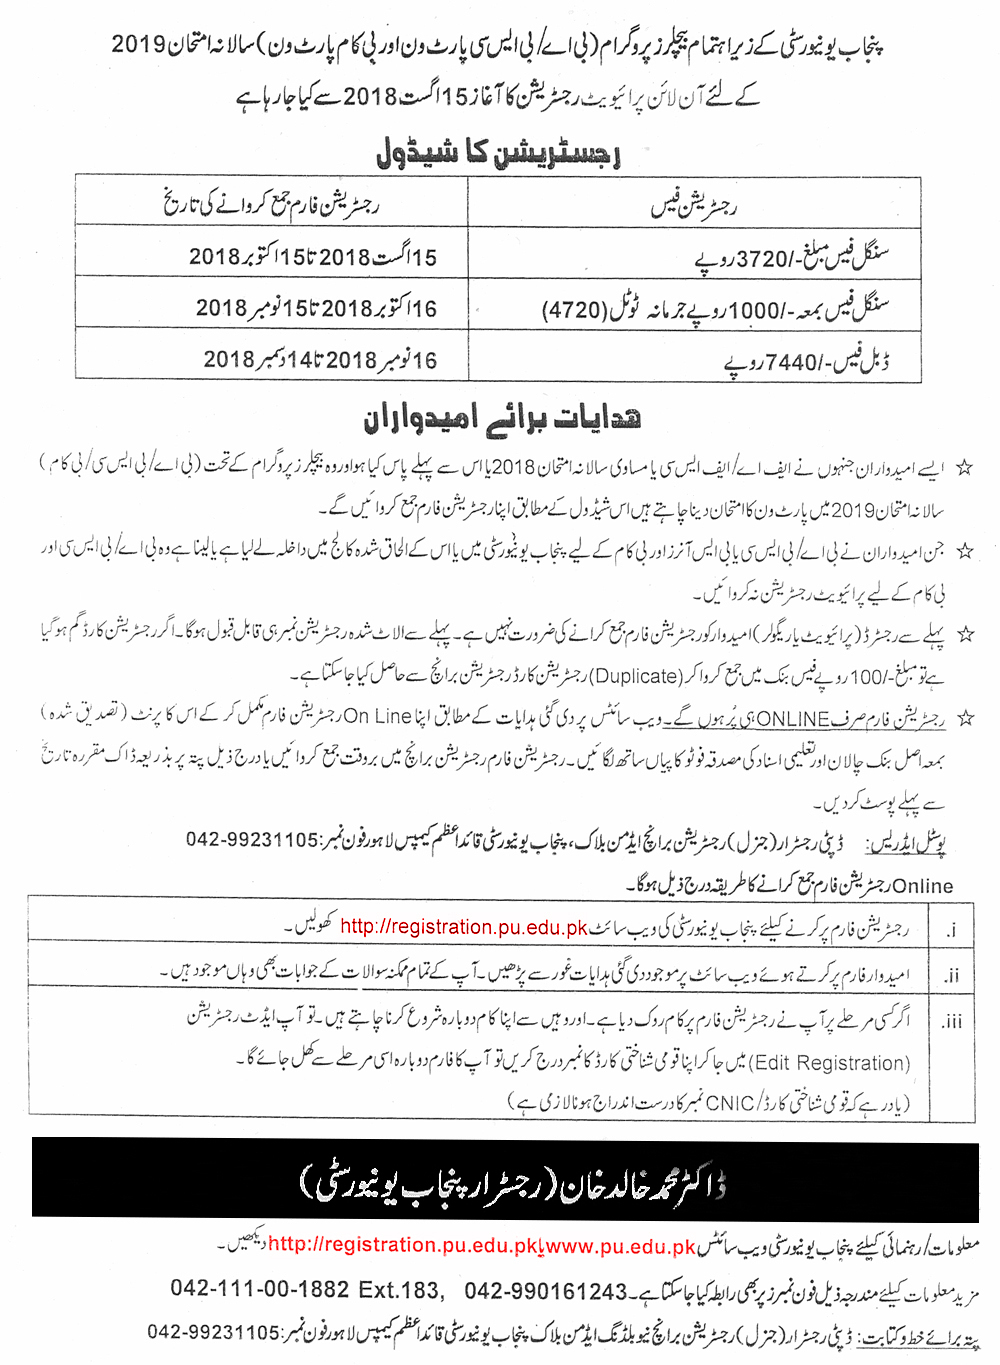 Punjab University Lahore BA BSc Admission Forms 2019 Fee Private